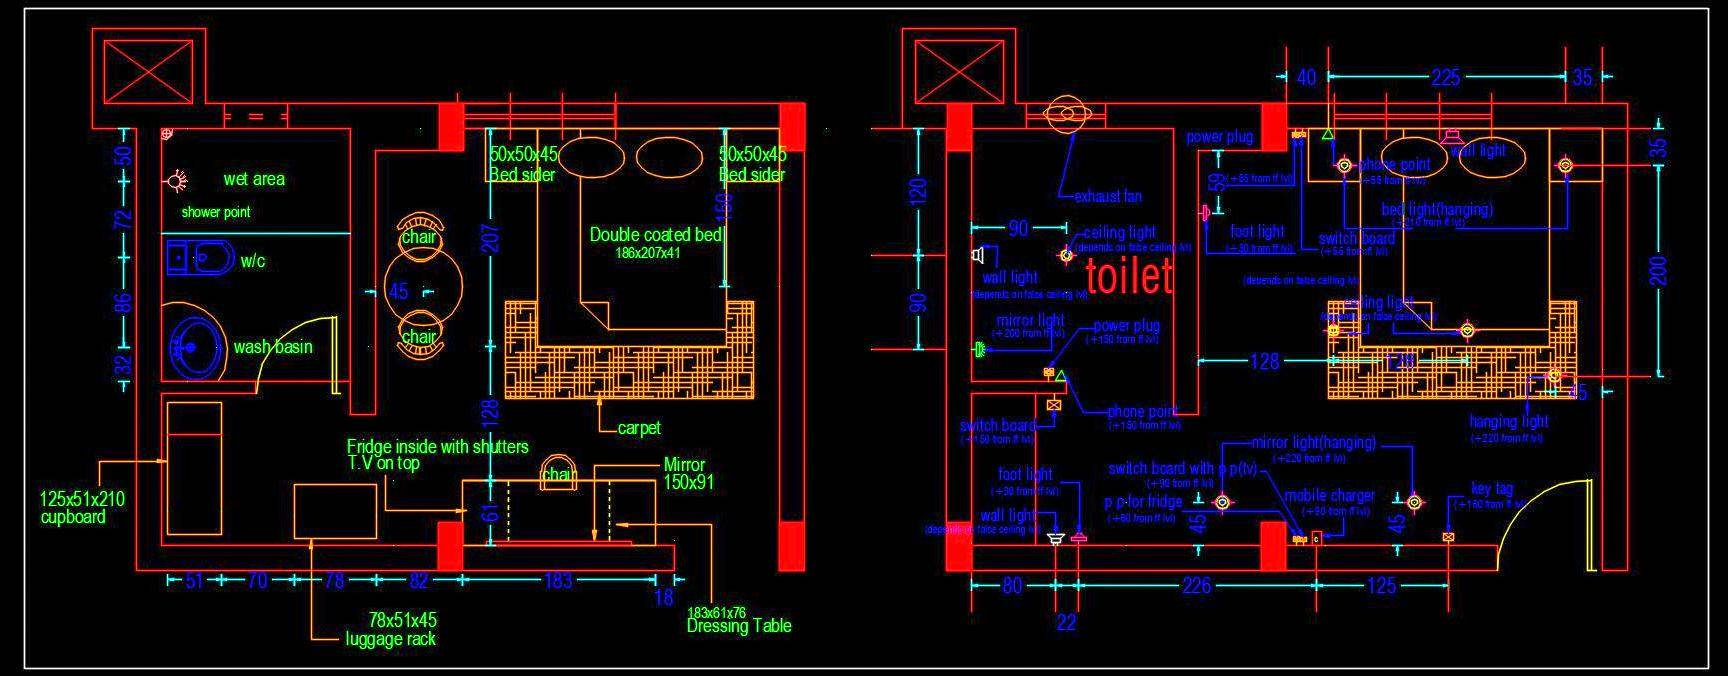 Hotel Guest Room Interior Floor Layout Plan Free Download Autocad Drawings Dwg Autocad Dwg Plan N Design